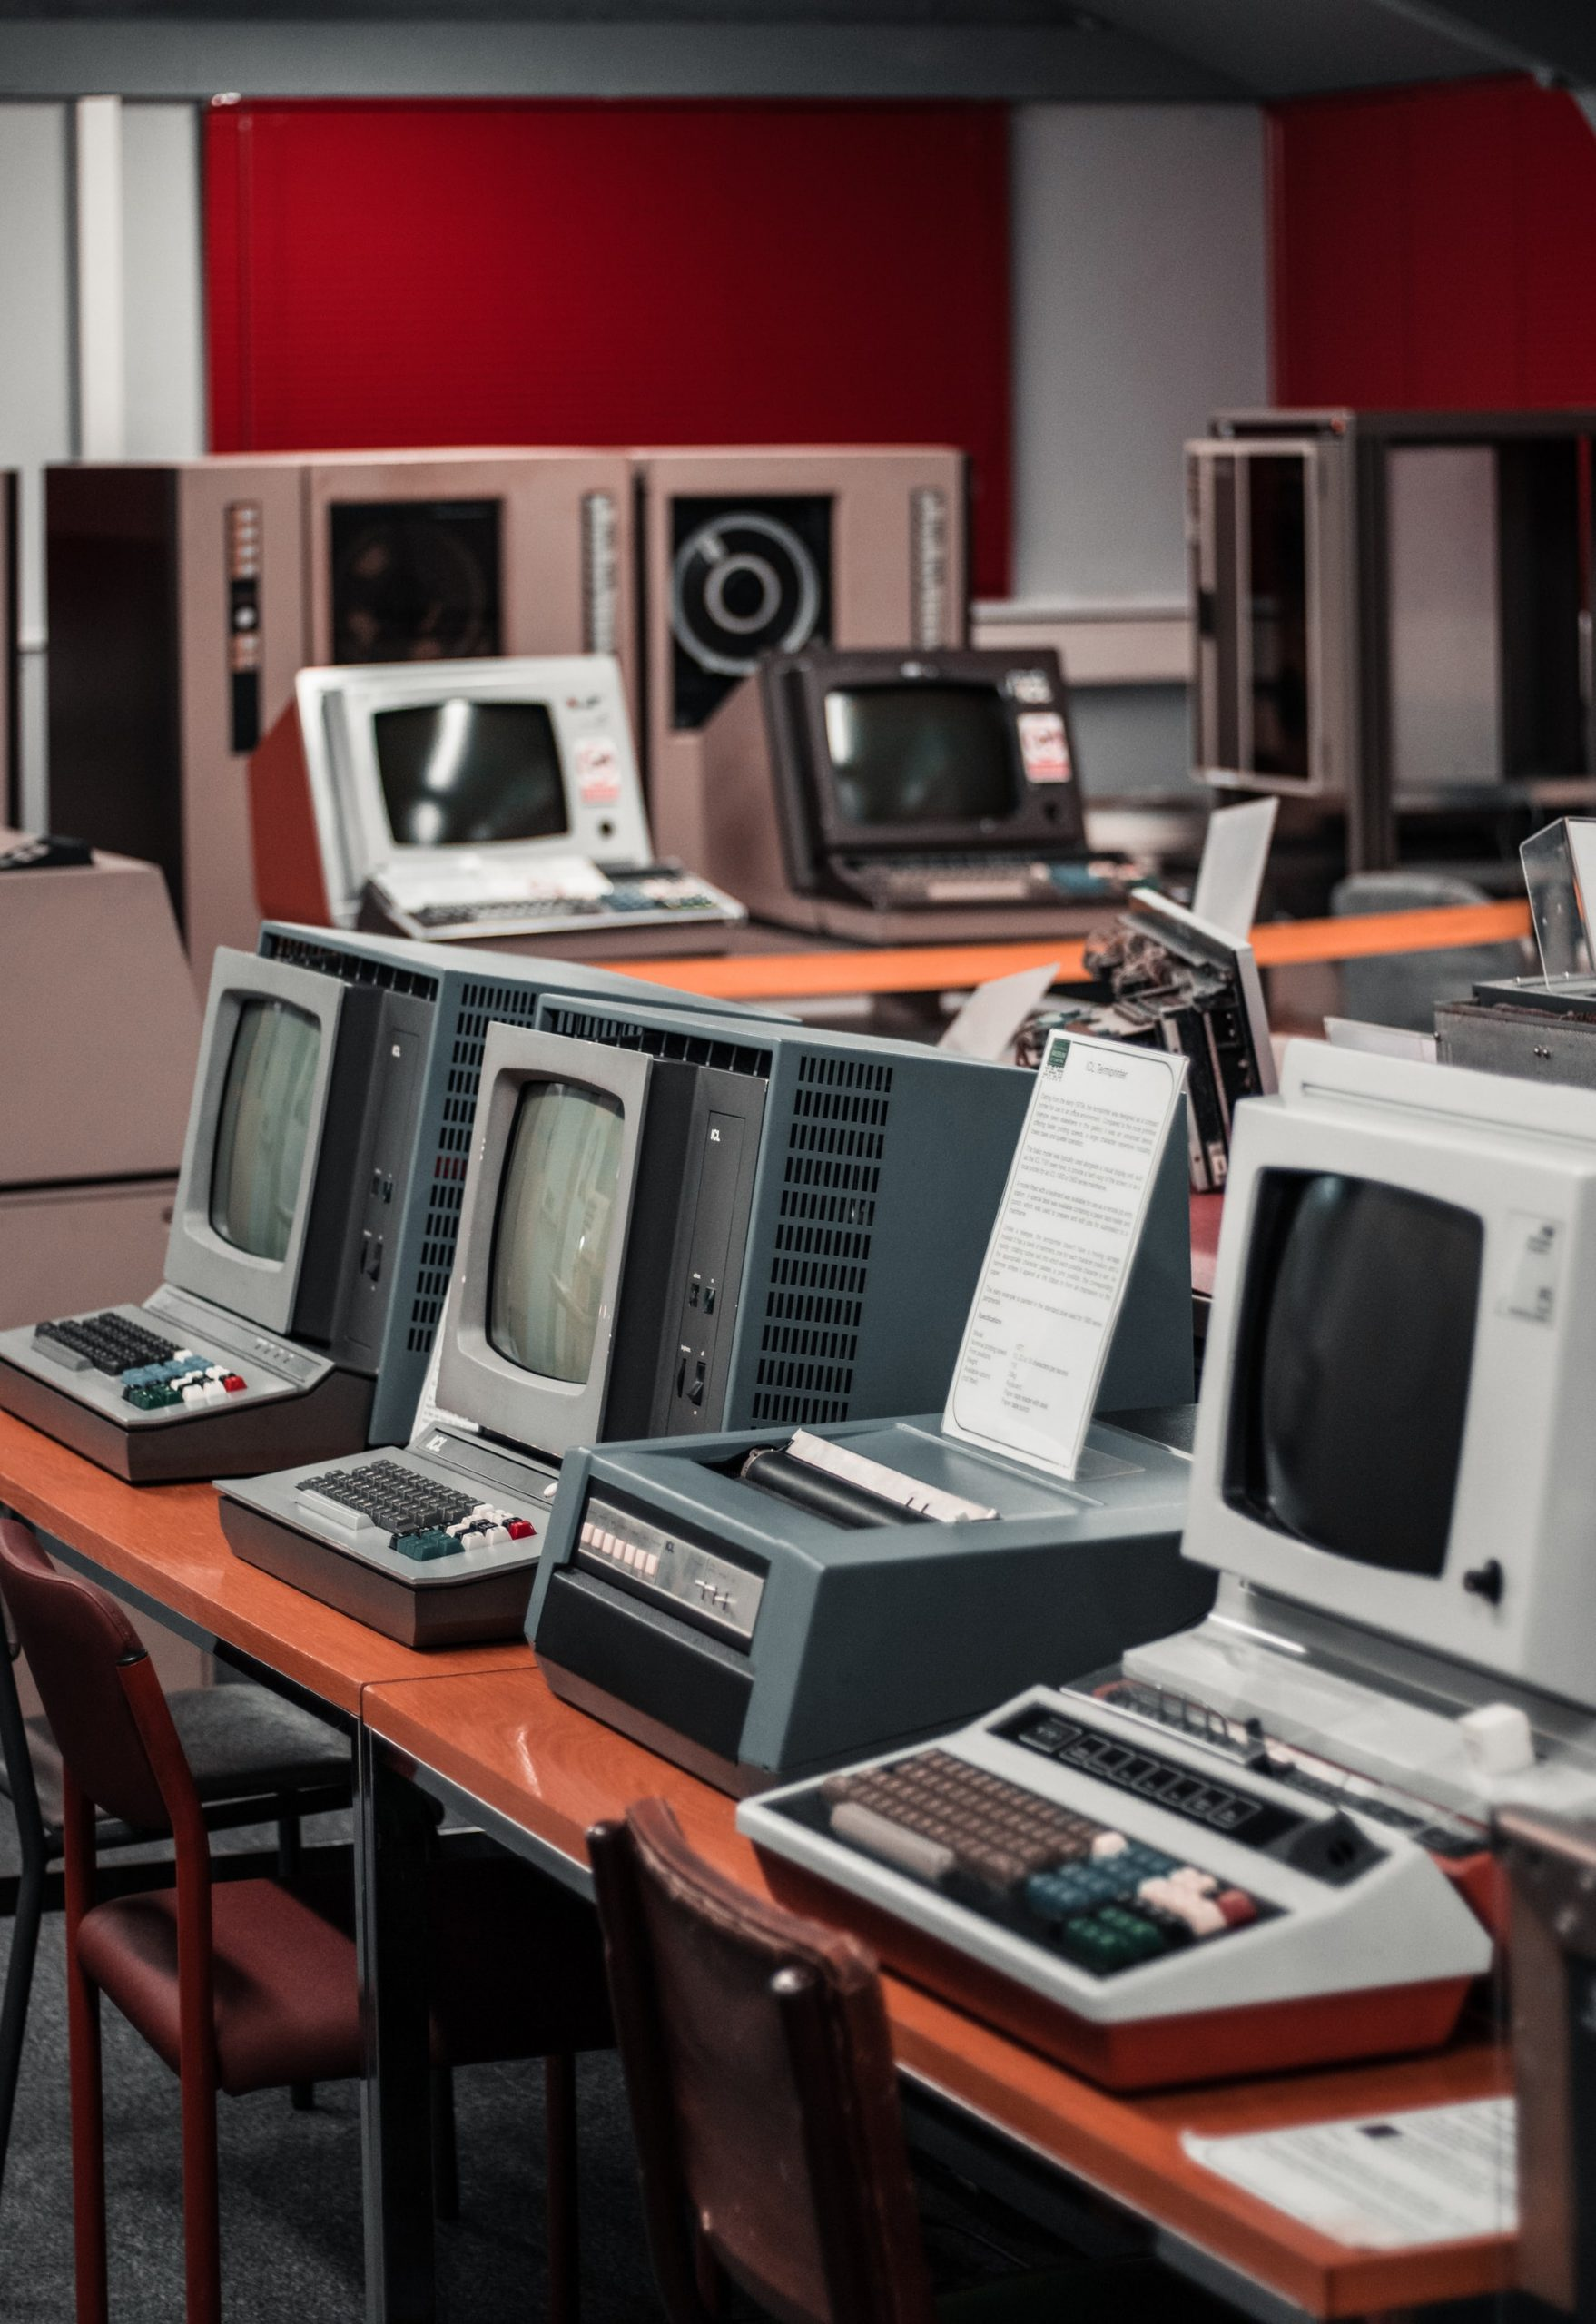 Tips When Visiting a Retro Computer Store